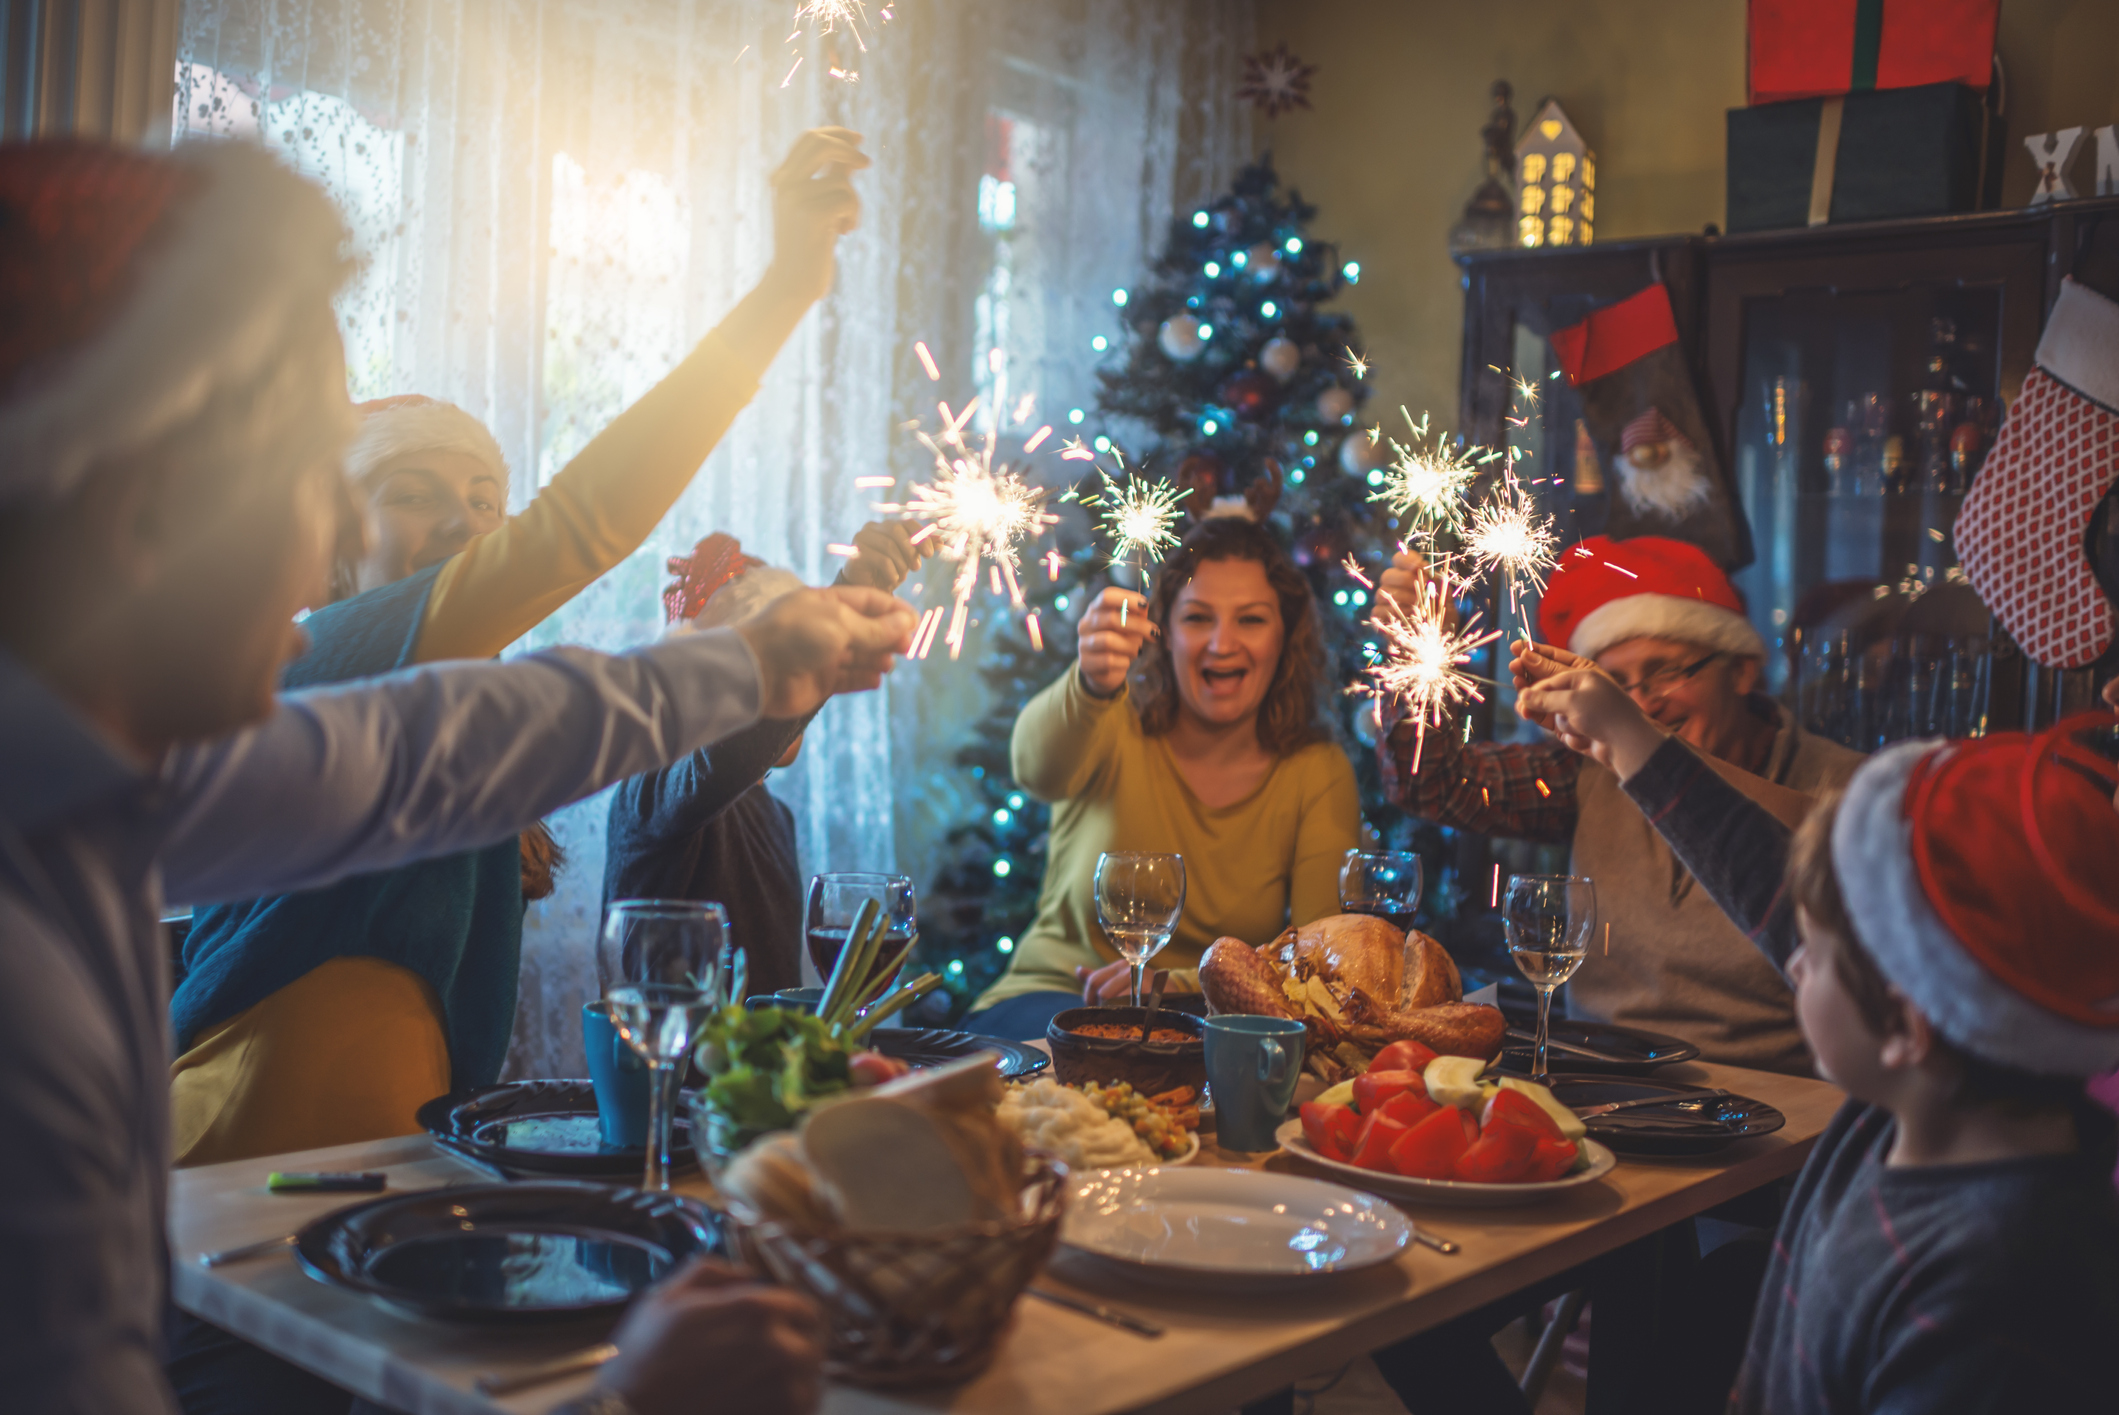 Wendy Hargreaves: How to outsource Christmas